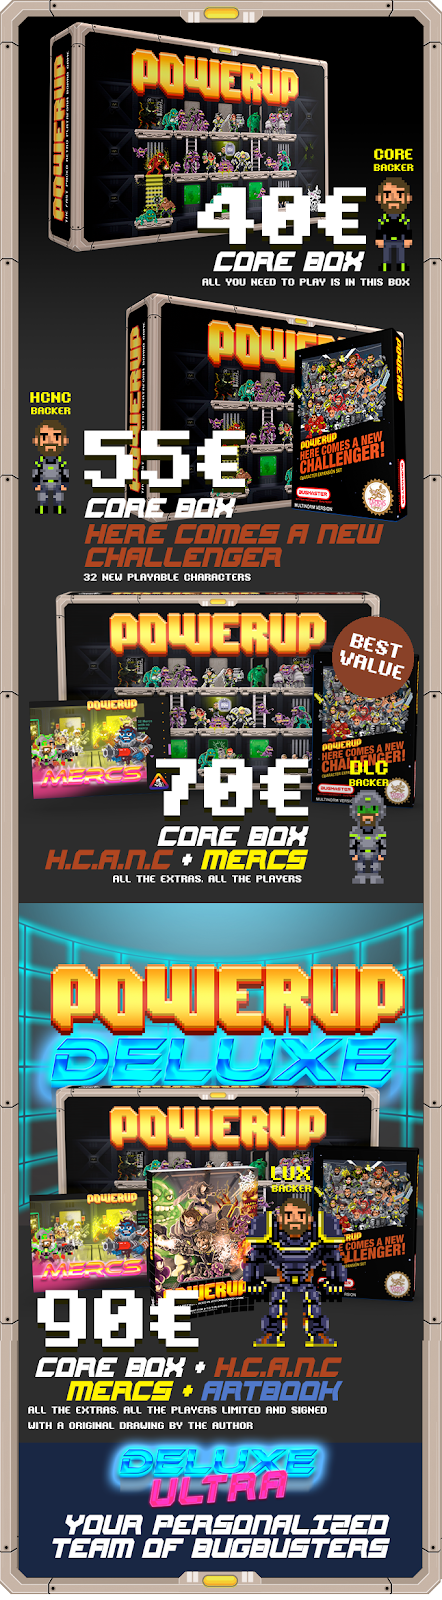 https://www.kickstarter.com/projects/laian/powerup-the-16bit-board-game/description